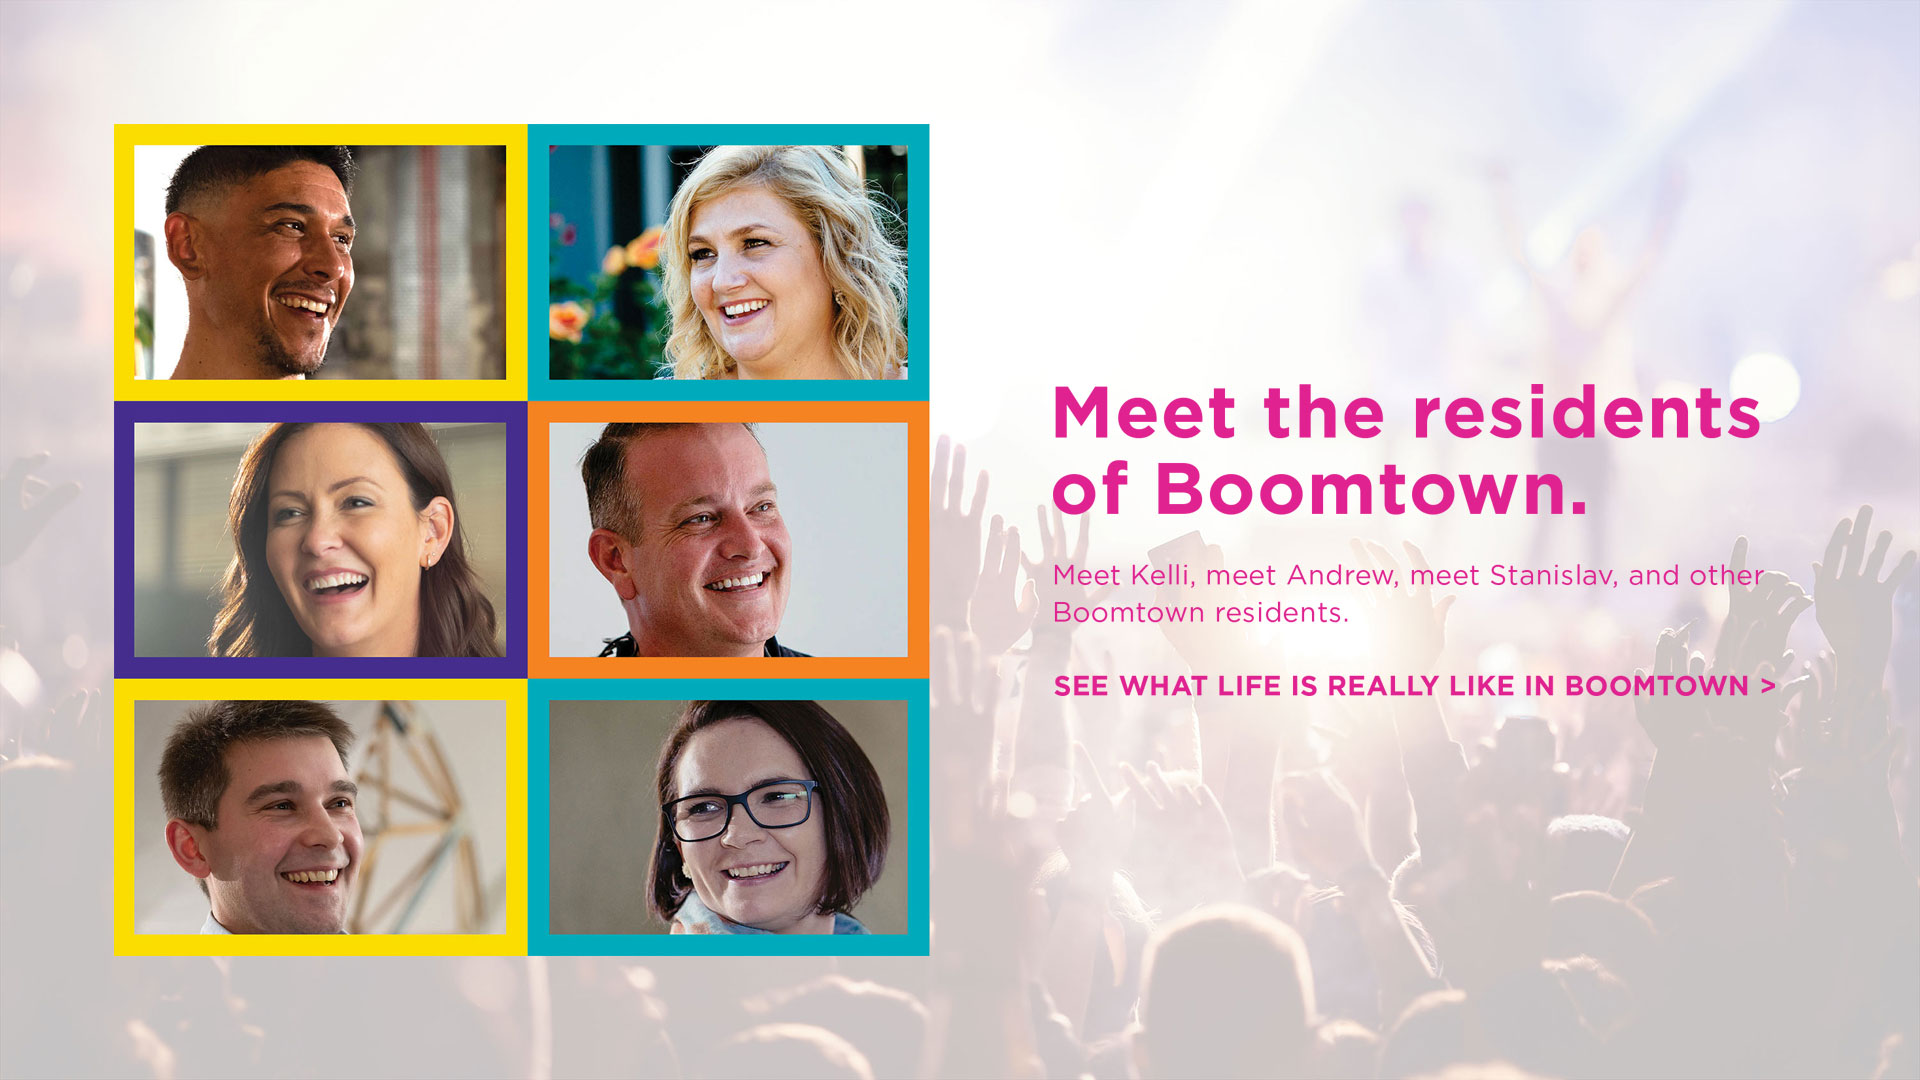 Meet the residents of Boomtown